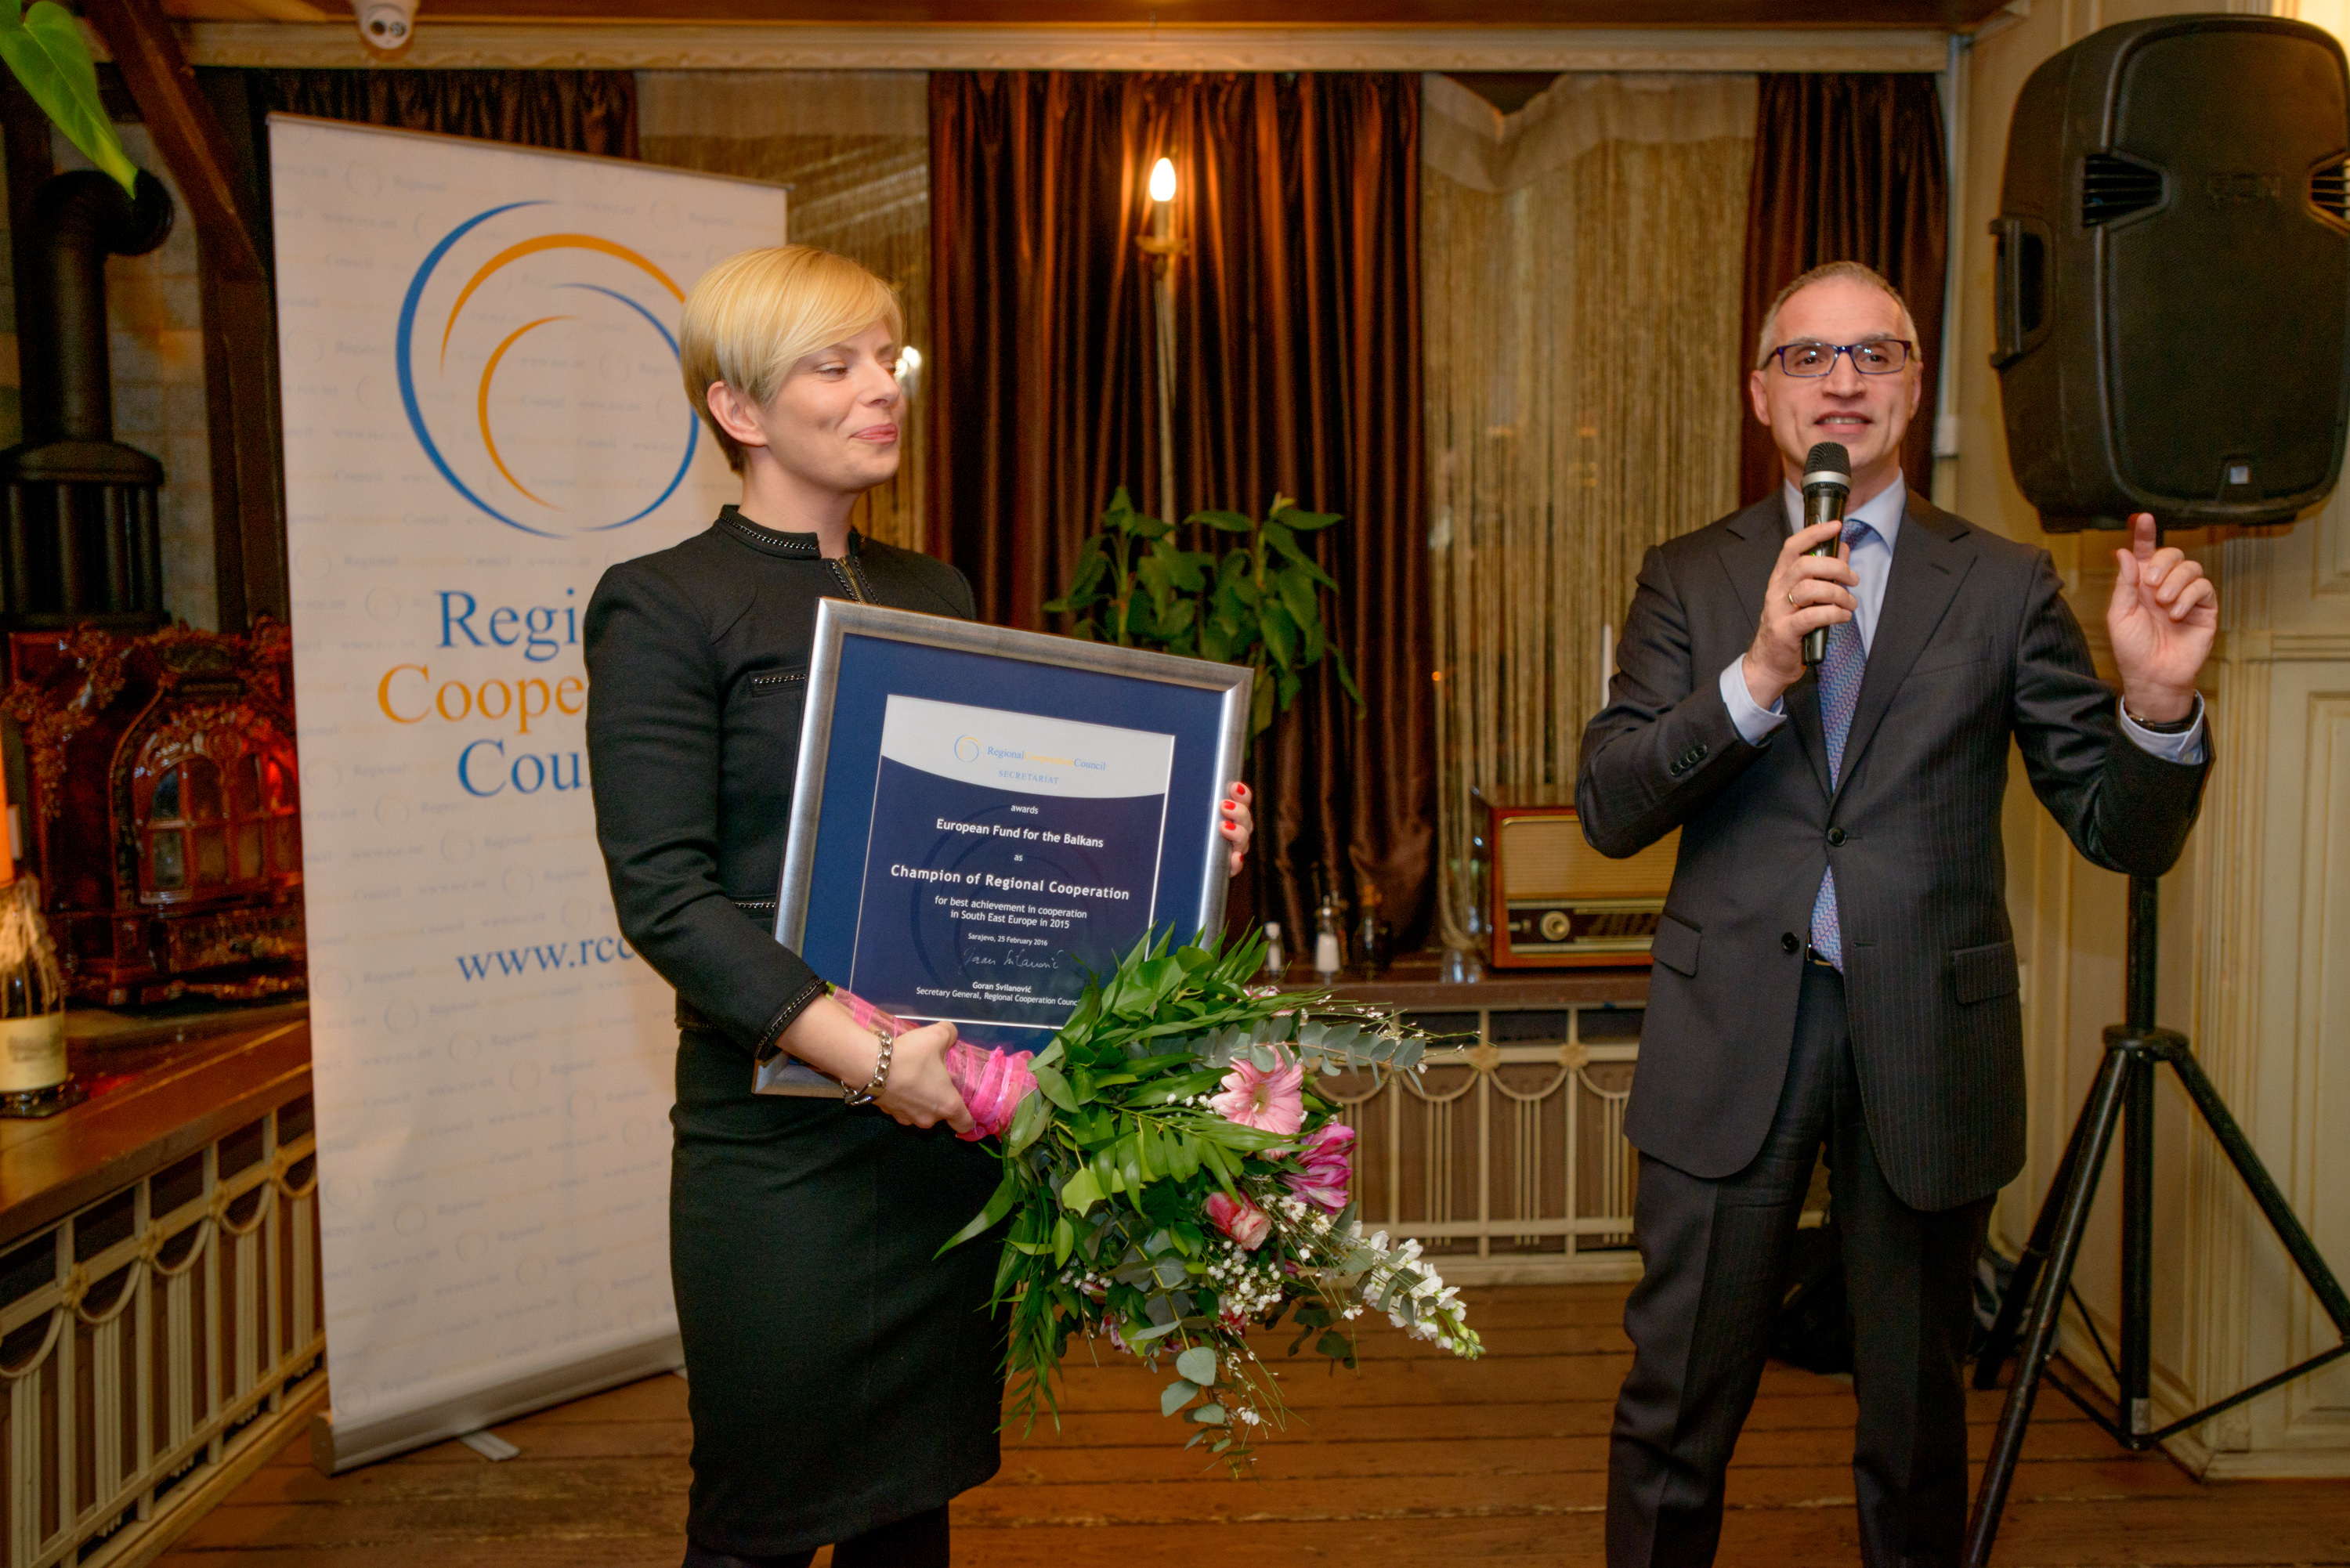 Executive Director of the European Fund for the Balkans, Hedvig Morvai (left), on behalf of the EFB, receives RCC's Champion of Regional Cooperation award for 2015 from RCC Secretary General, Goran Svilanović, in Sarajevo, BiH on 25 February 2016. (Photo: RCC/Amer Kapetanovic)